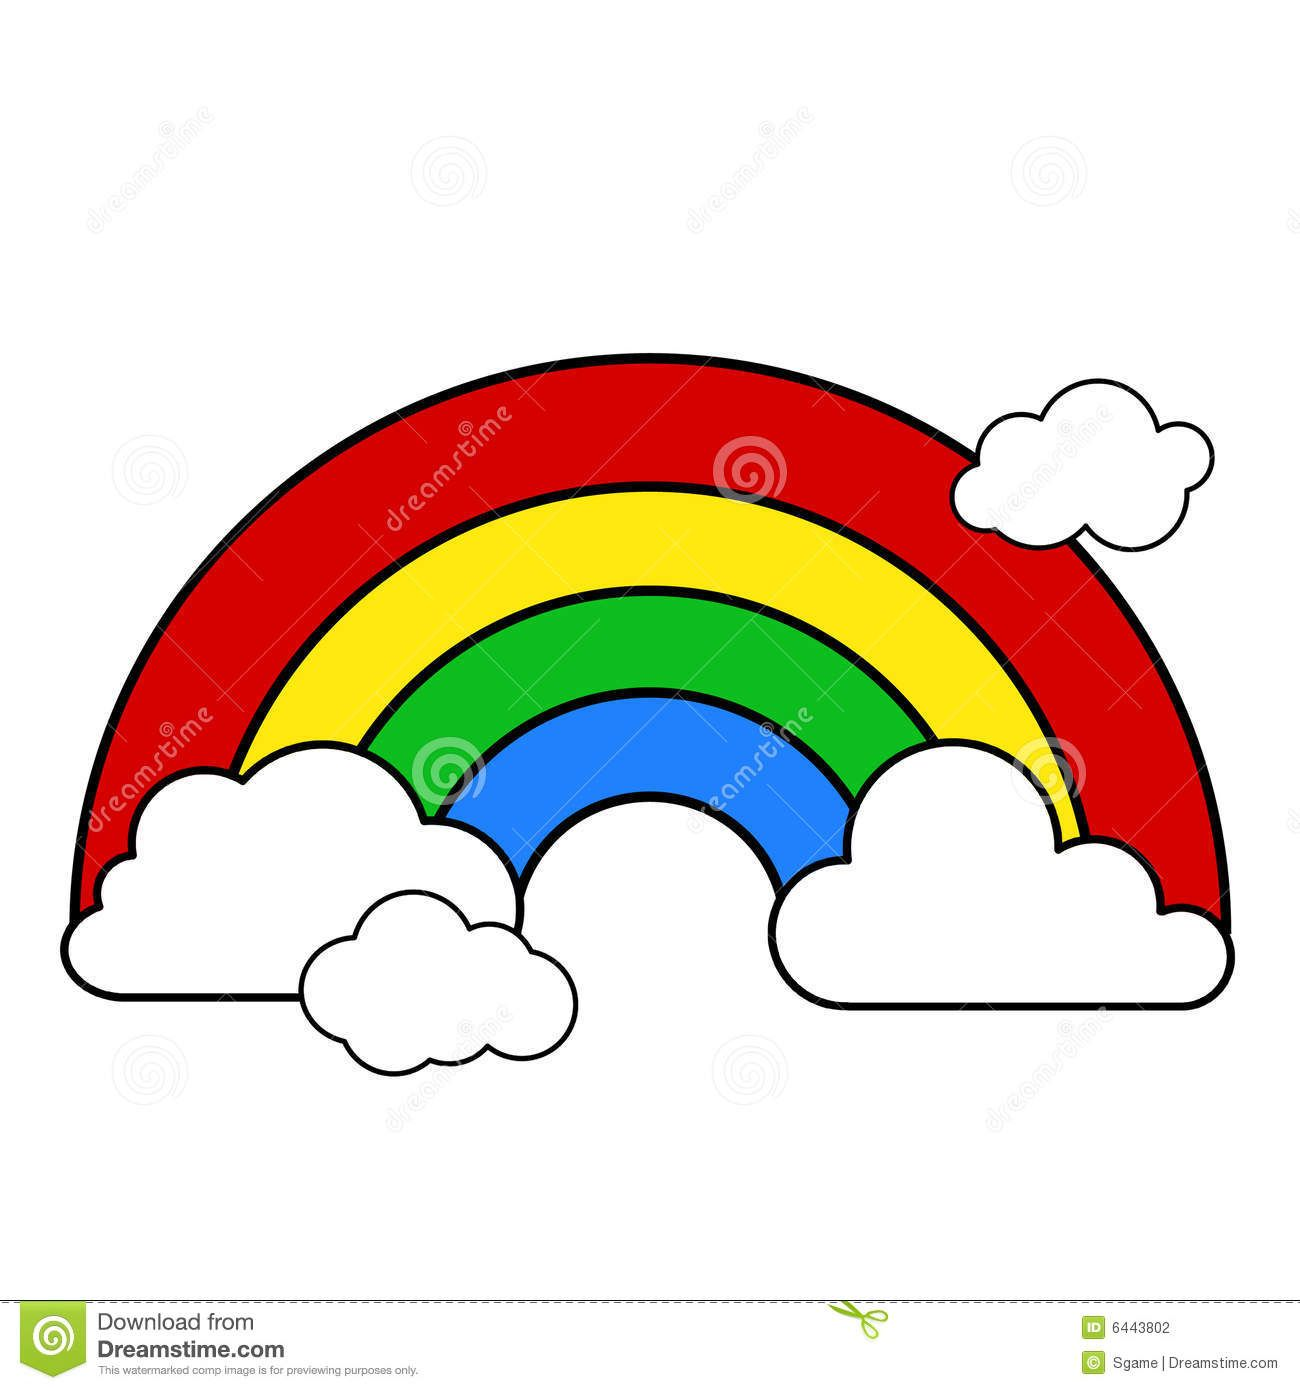 rainbow with clouds clipart applique pinterest cloud rainbows rh pinterest com rainbow clipart black and white free rainbow trout black and white clipart